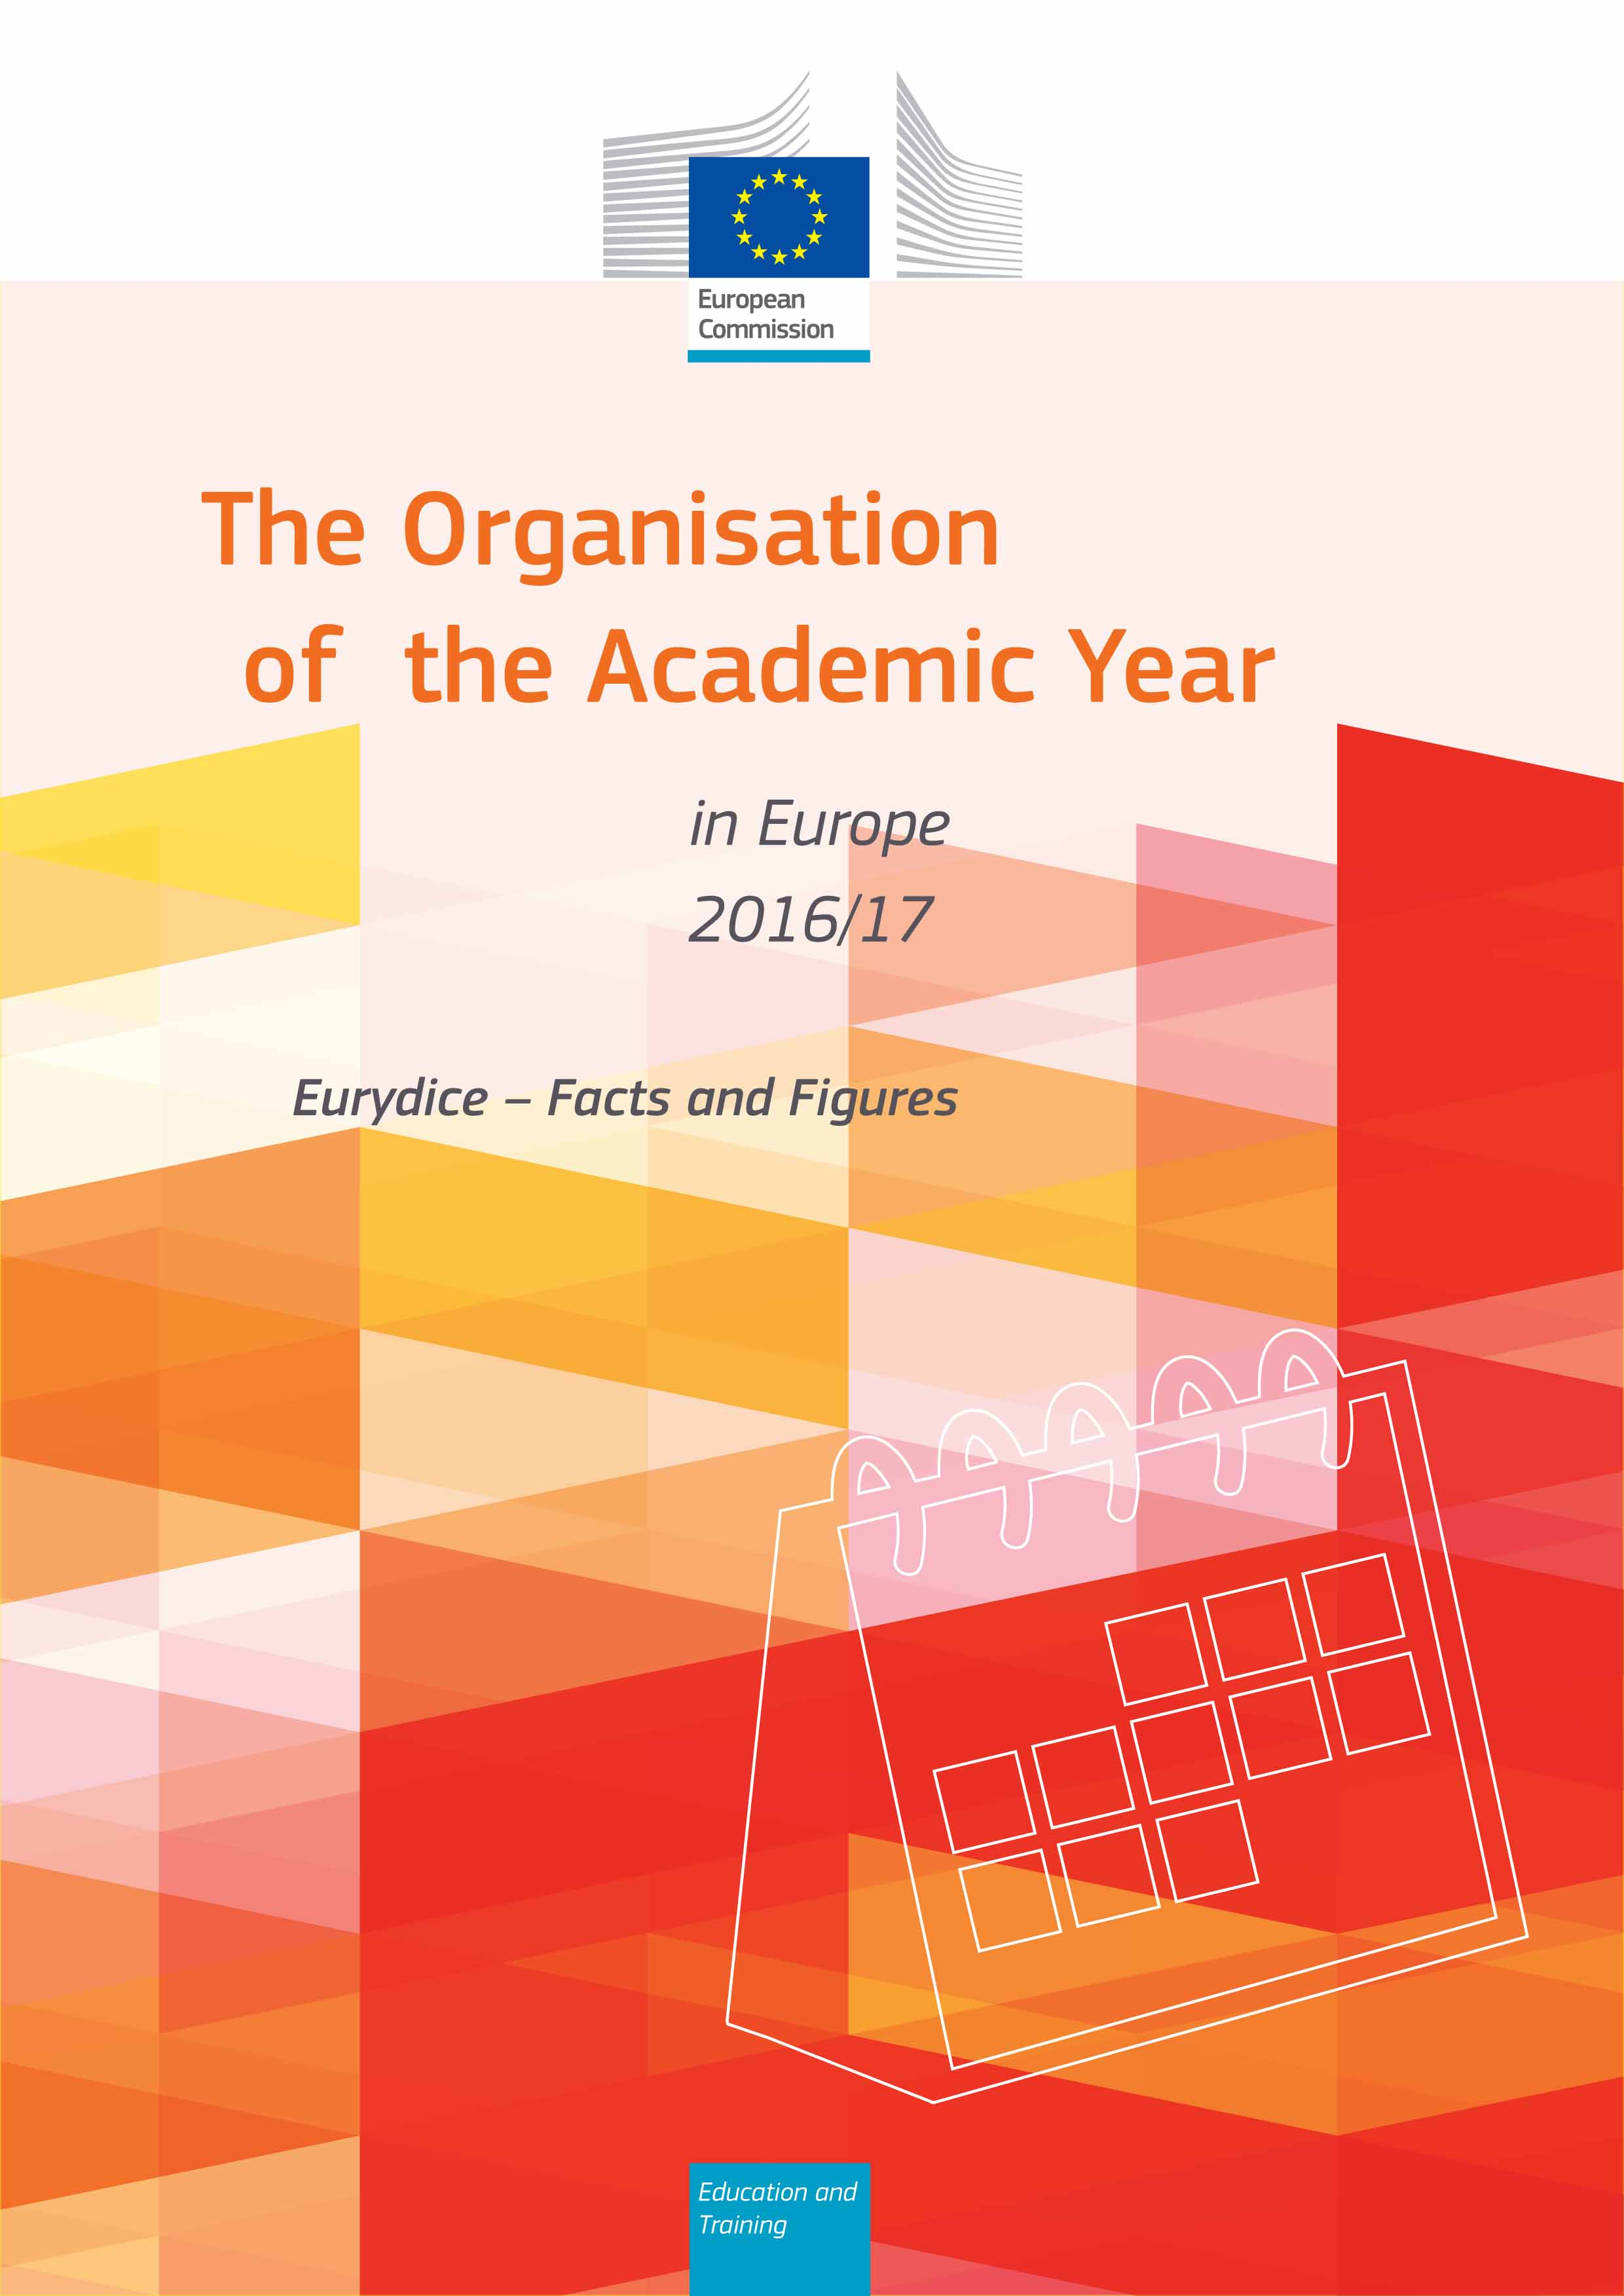 The Organisation of the Academic Year in Europe - 2016/17